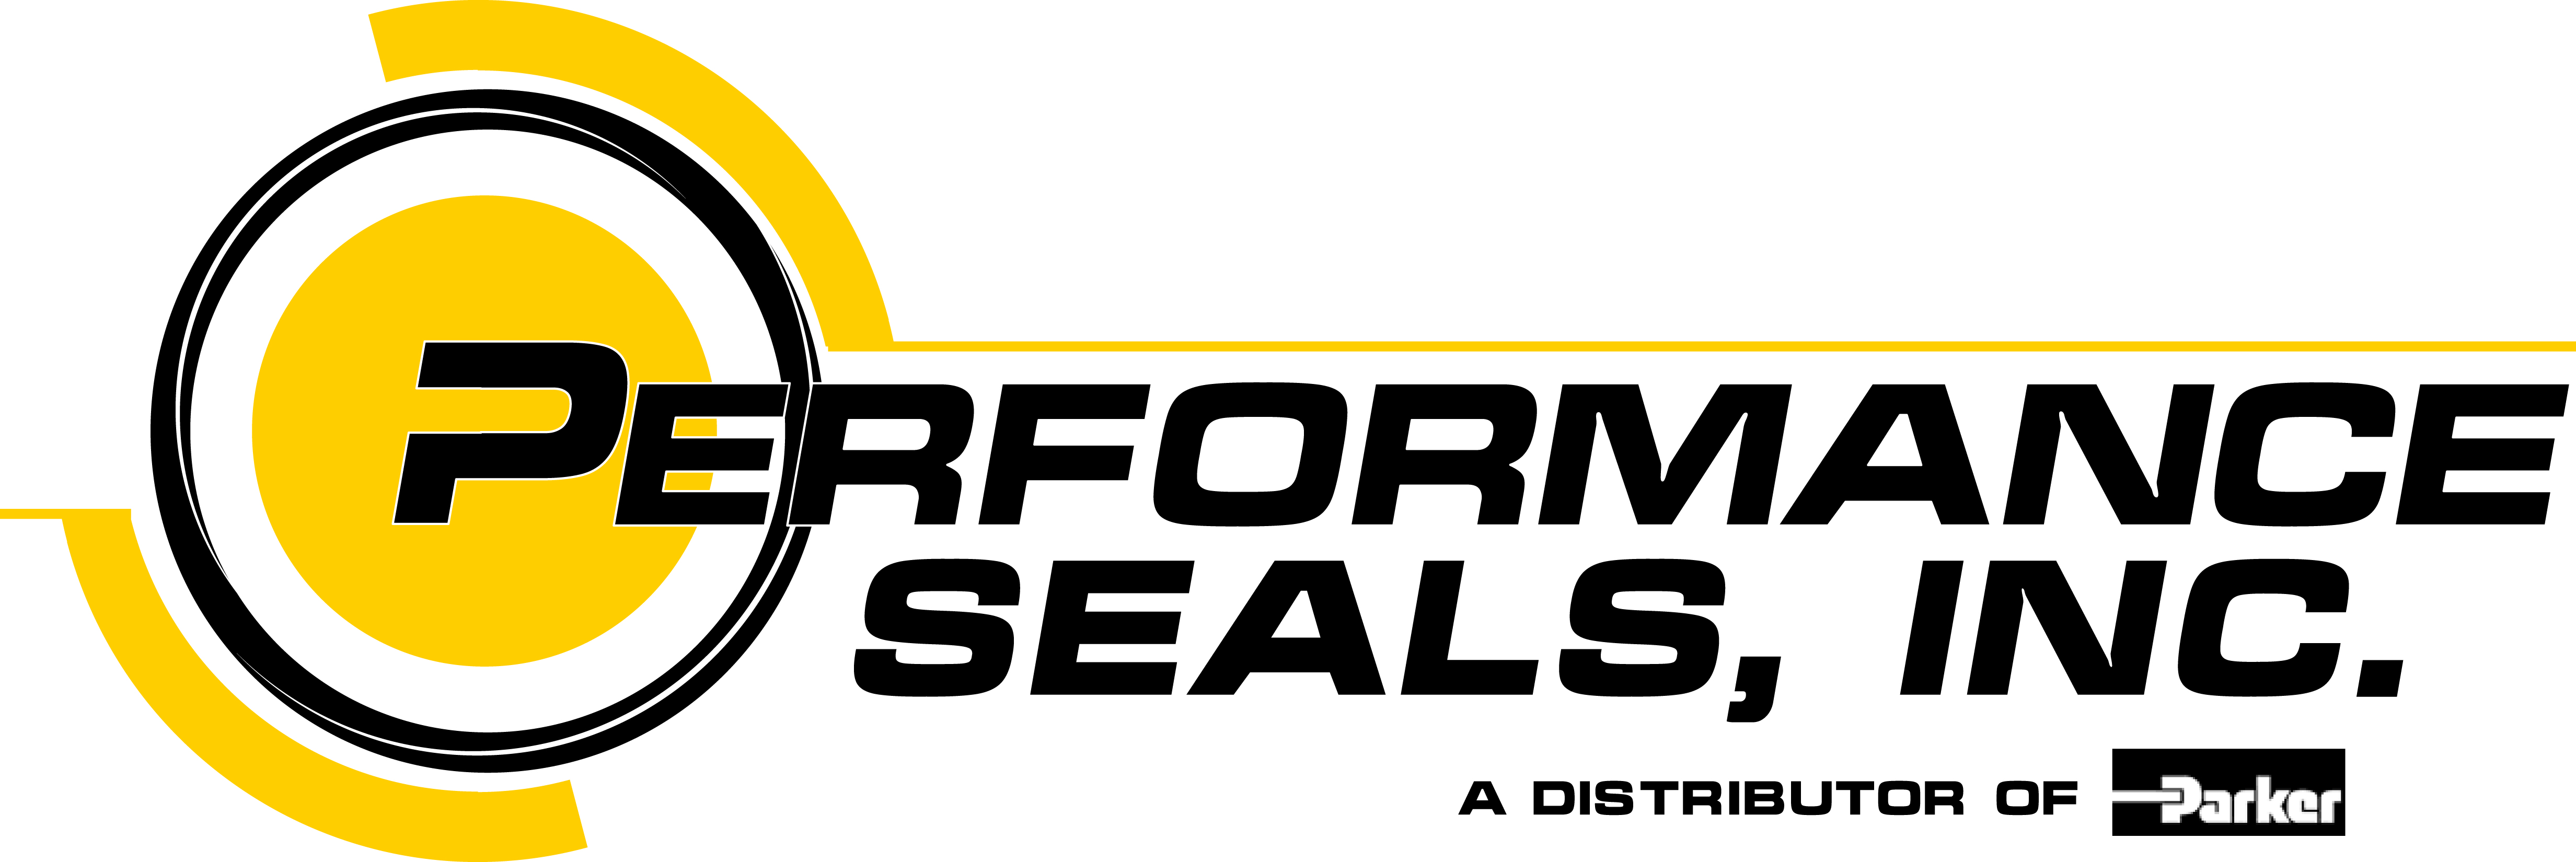 Performance Seals, Inc.